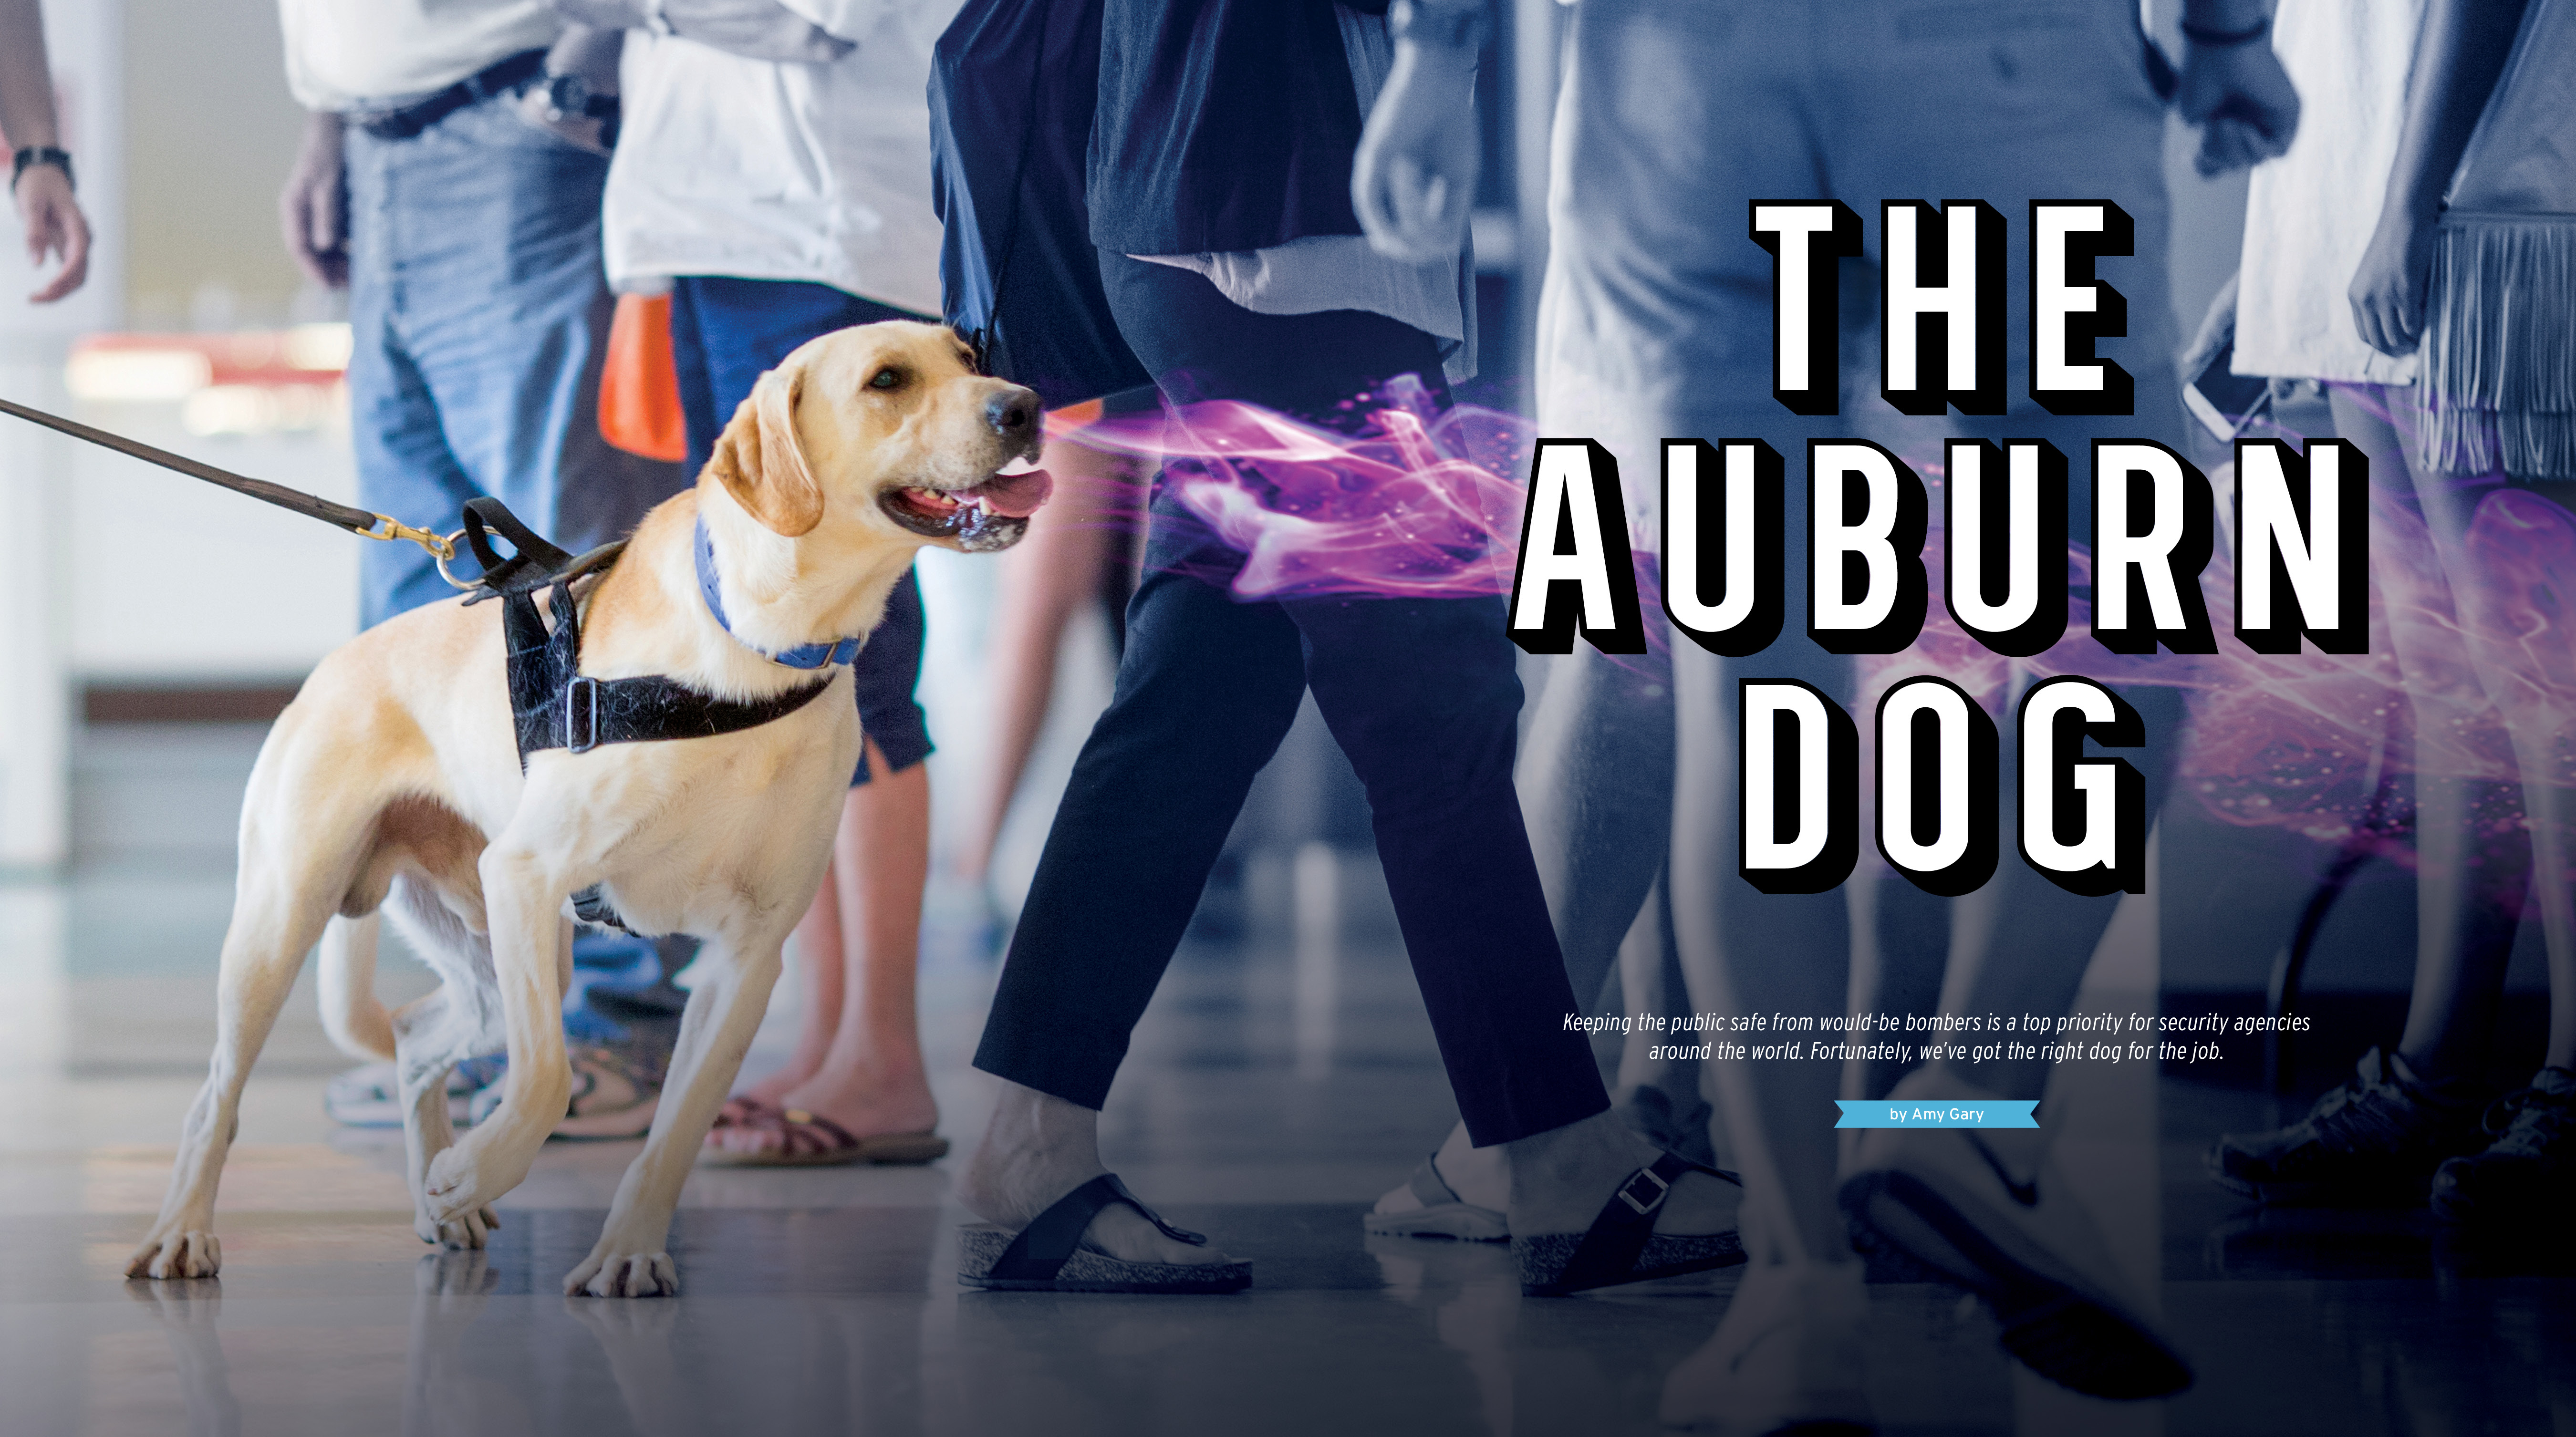 The Auburn Dog, Keeping the public safe from would-be bombers is a top priority for security agencies around the world. Fortunately, we've got the right dog for the job. By Amy Gary